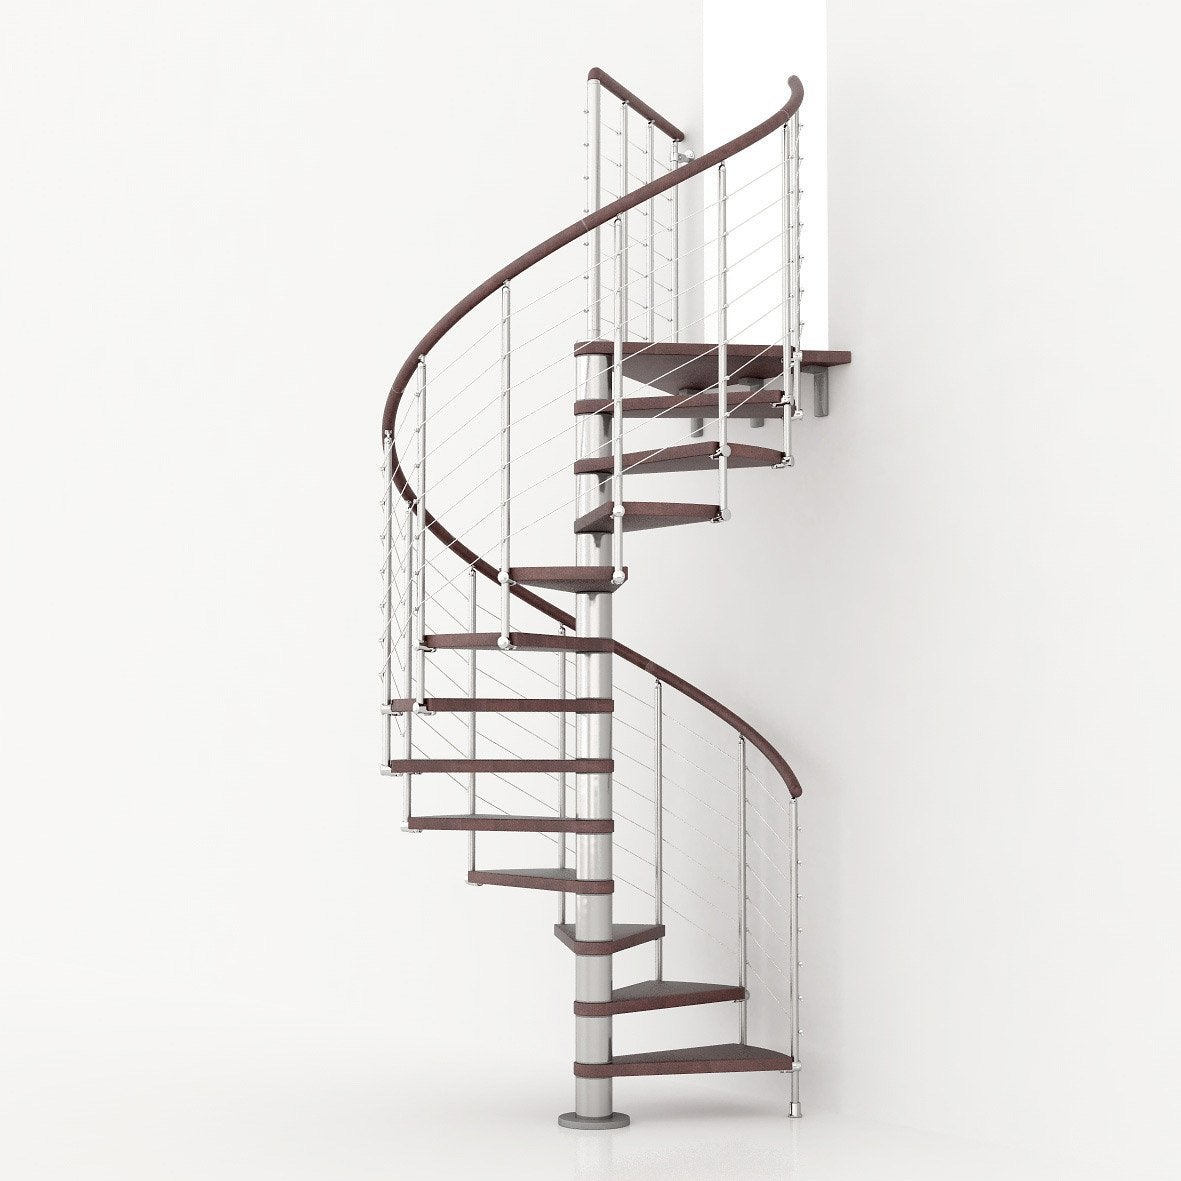 Escalier colima on rond ring line marches bois structure m tal chrom ler - Plan escalier colimacon ...